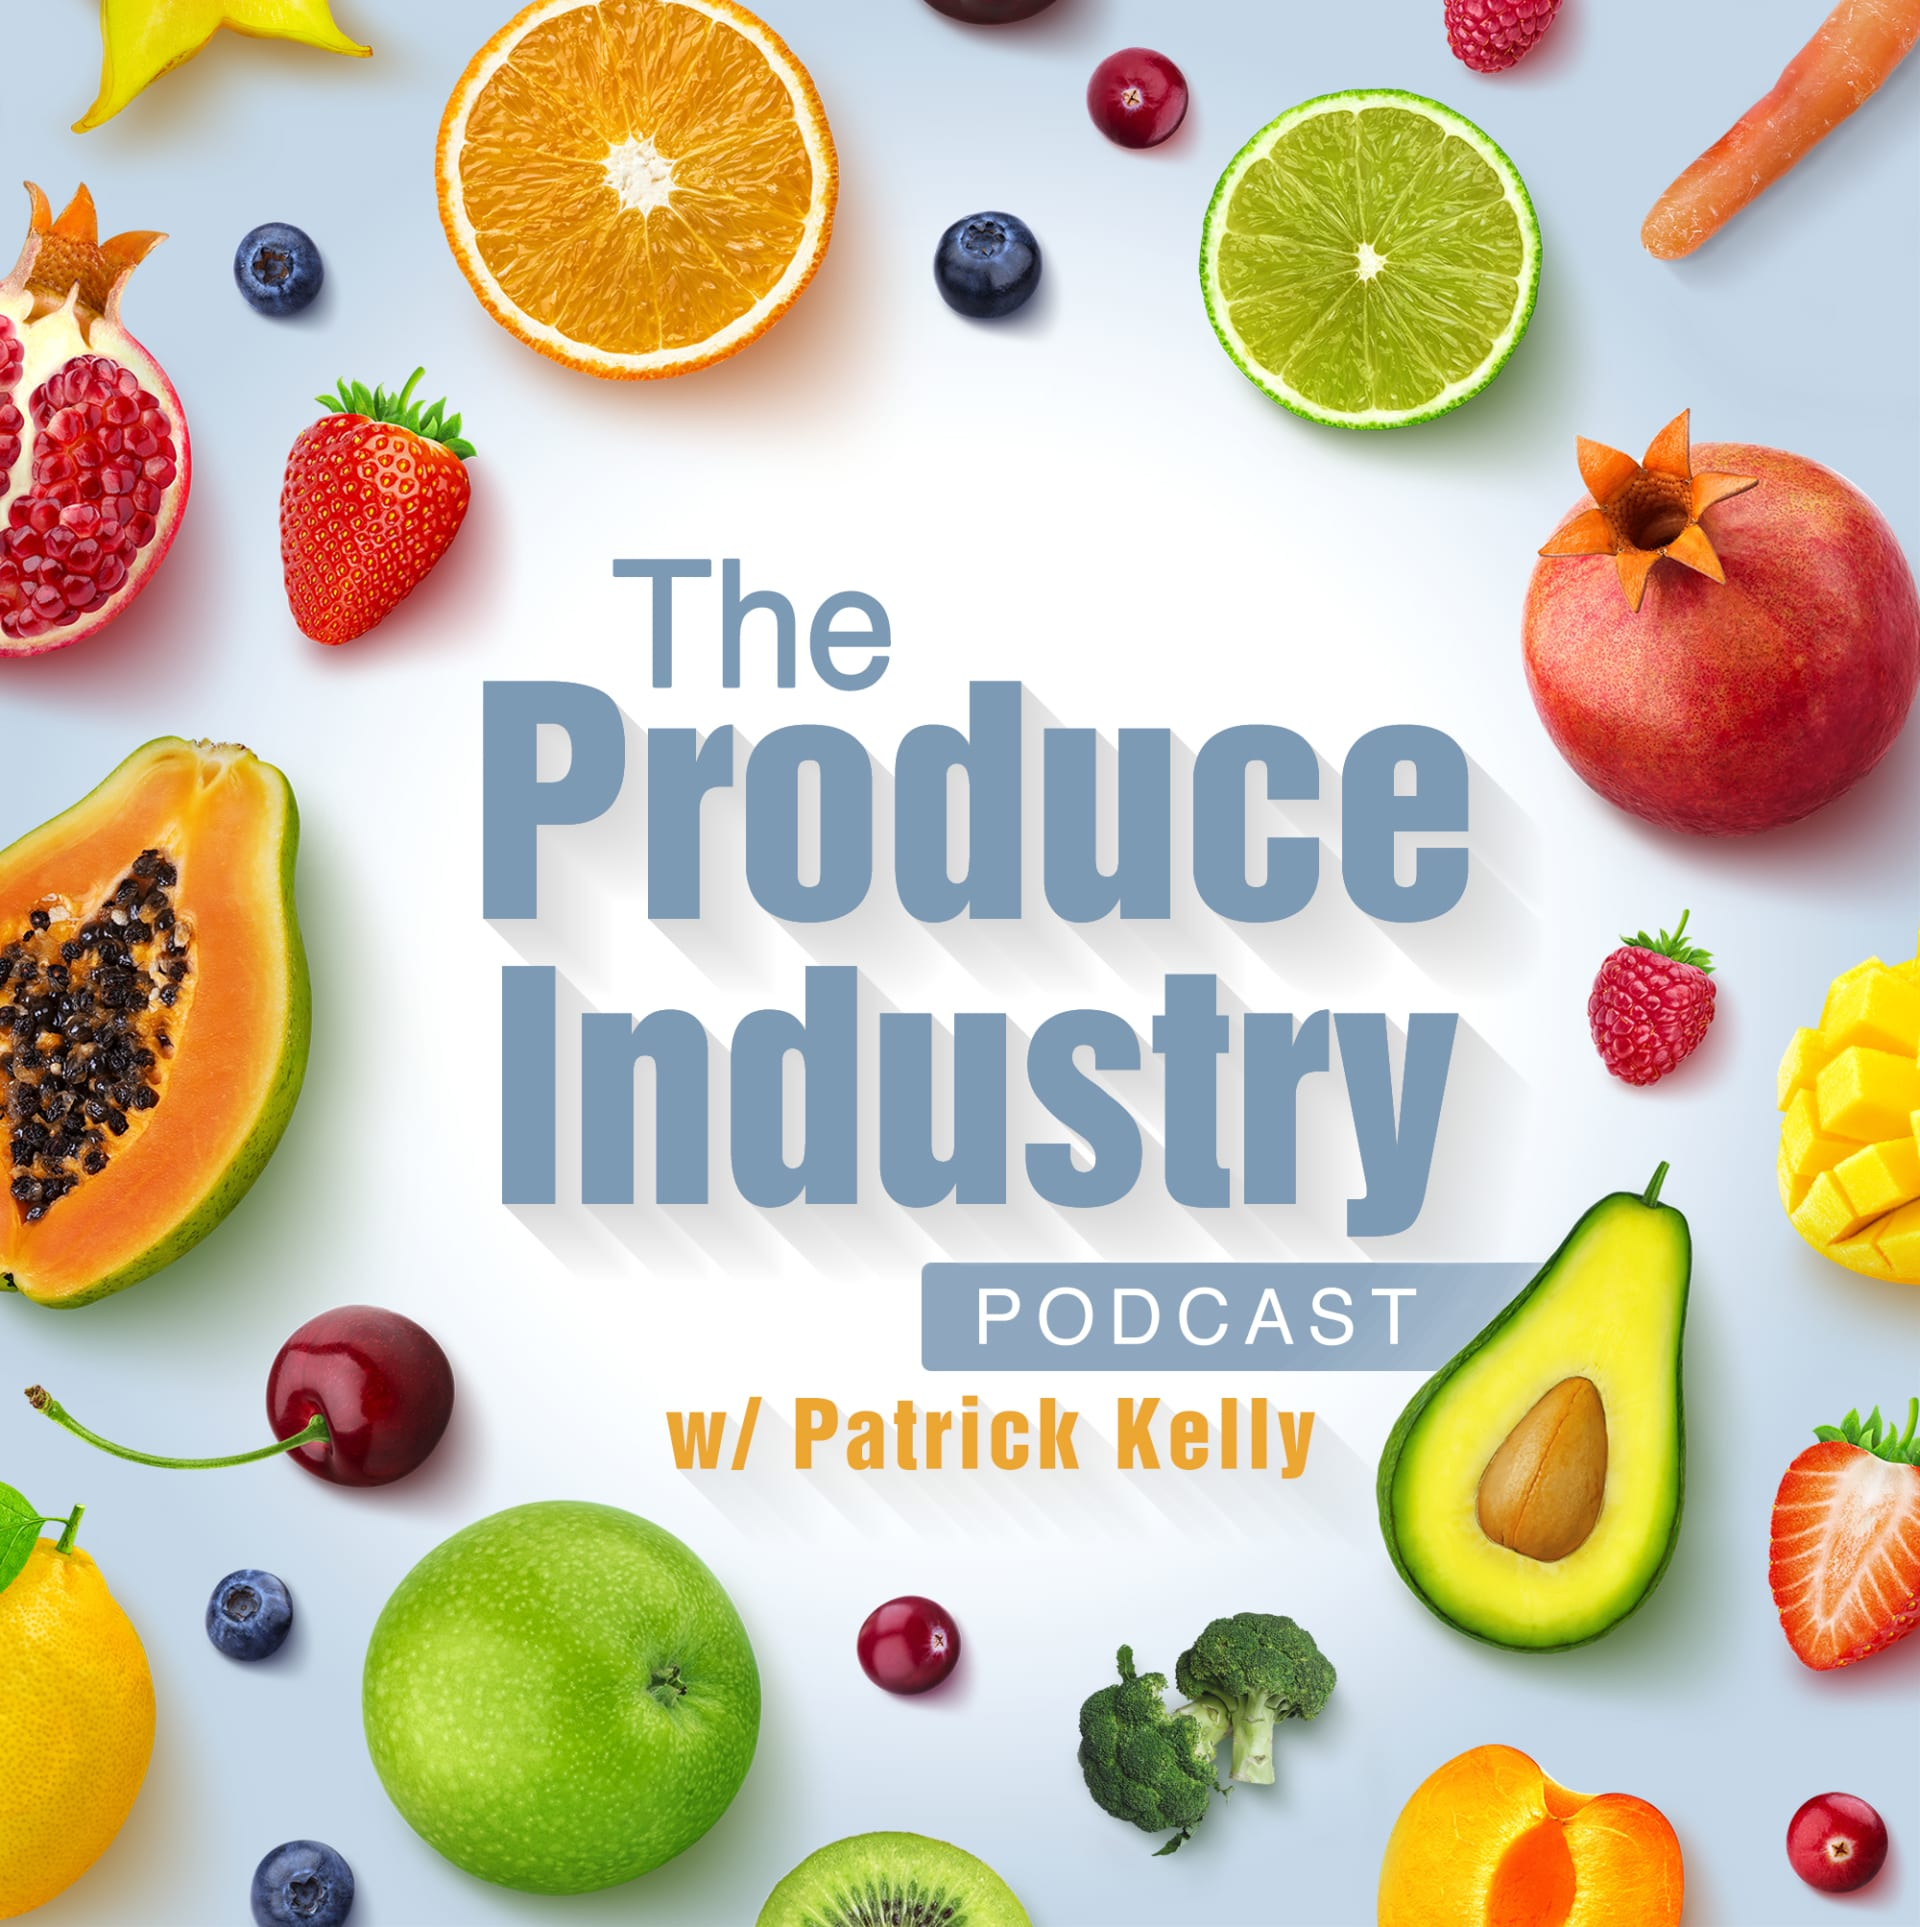 Check out the new Produce Industry Podcast App!